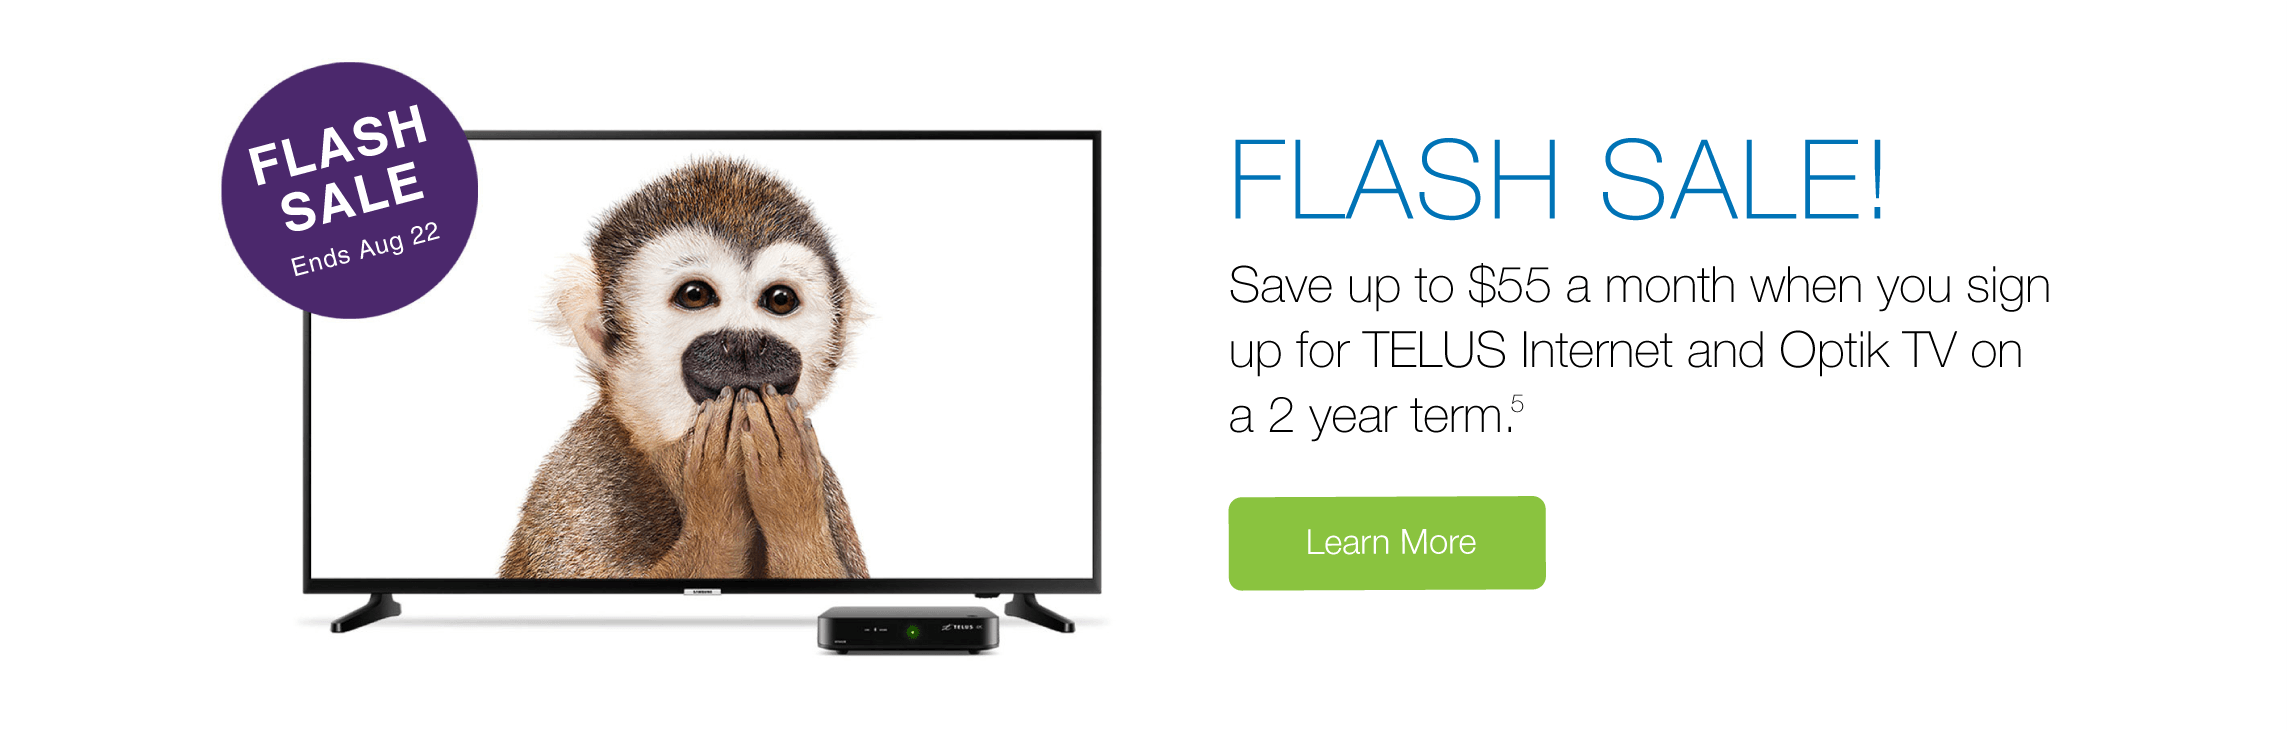 Save up to $55 a month when you sign up for TELUS Internet and Optik TV for 2 years!